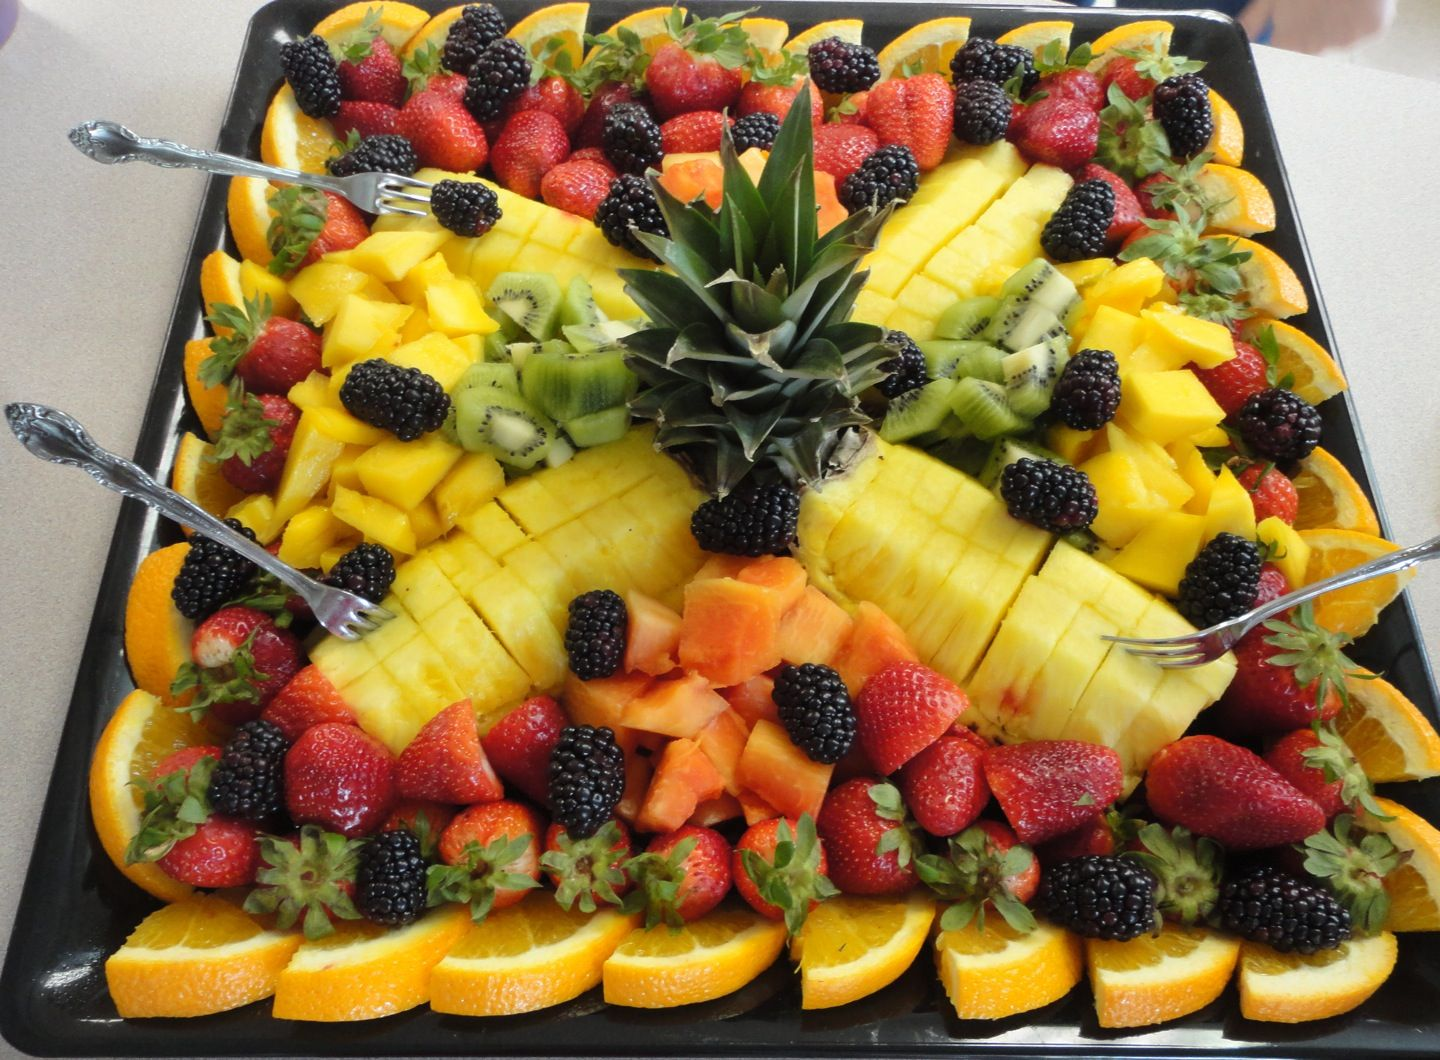 Fruit Designs For Parties Loveddd The Fruit Tray Her Mom Put Together Fruit Trays